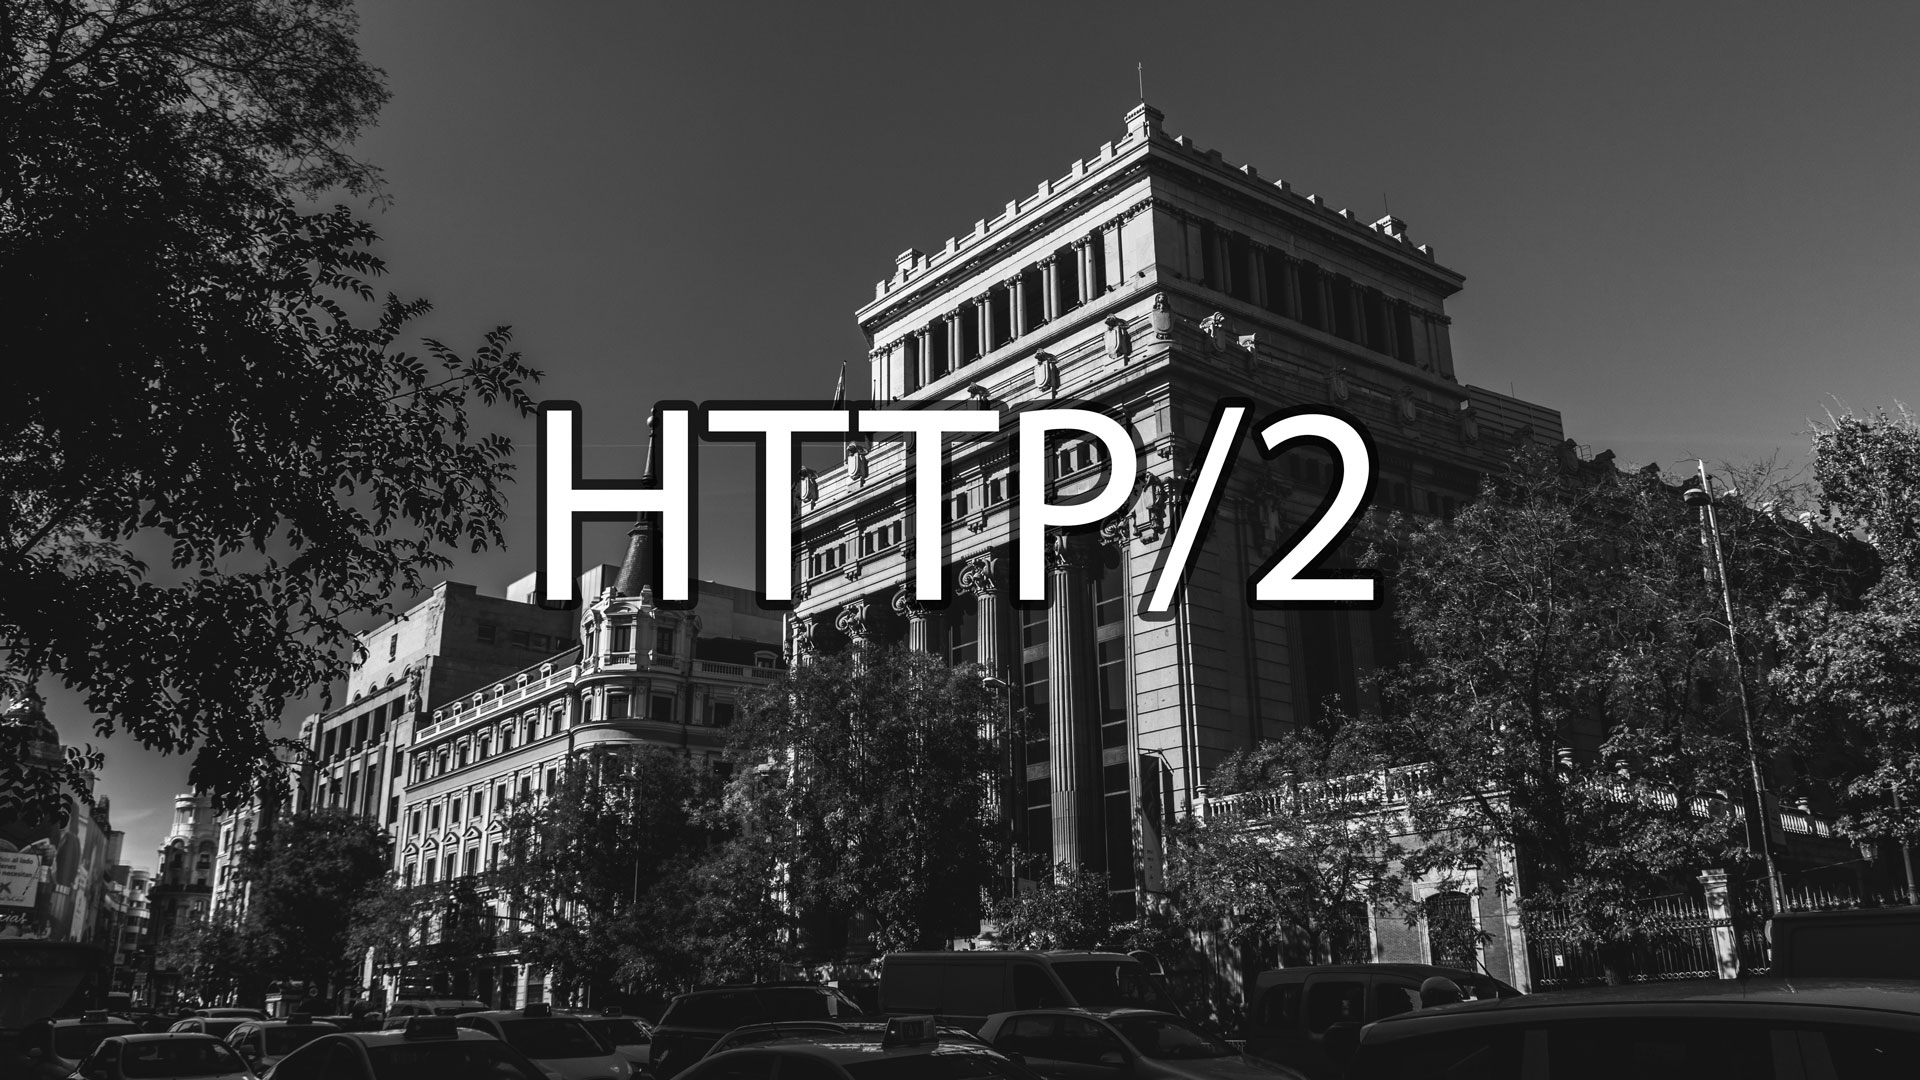 http2-cover